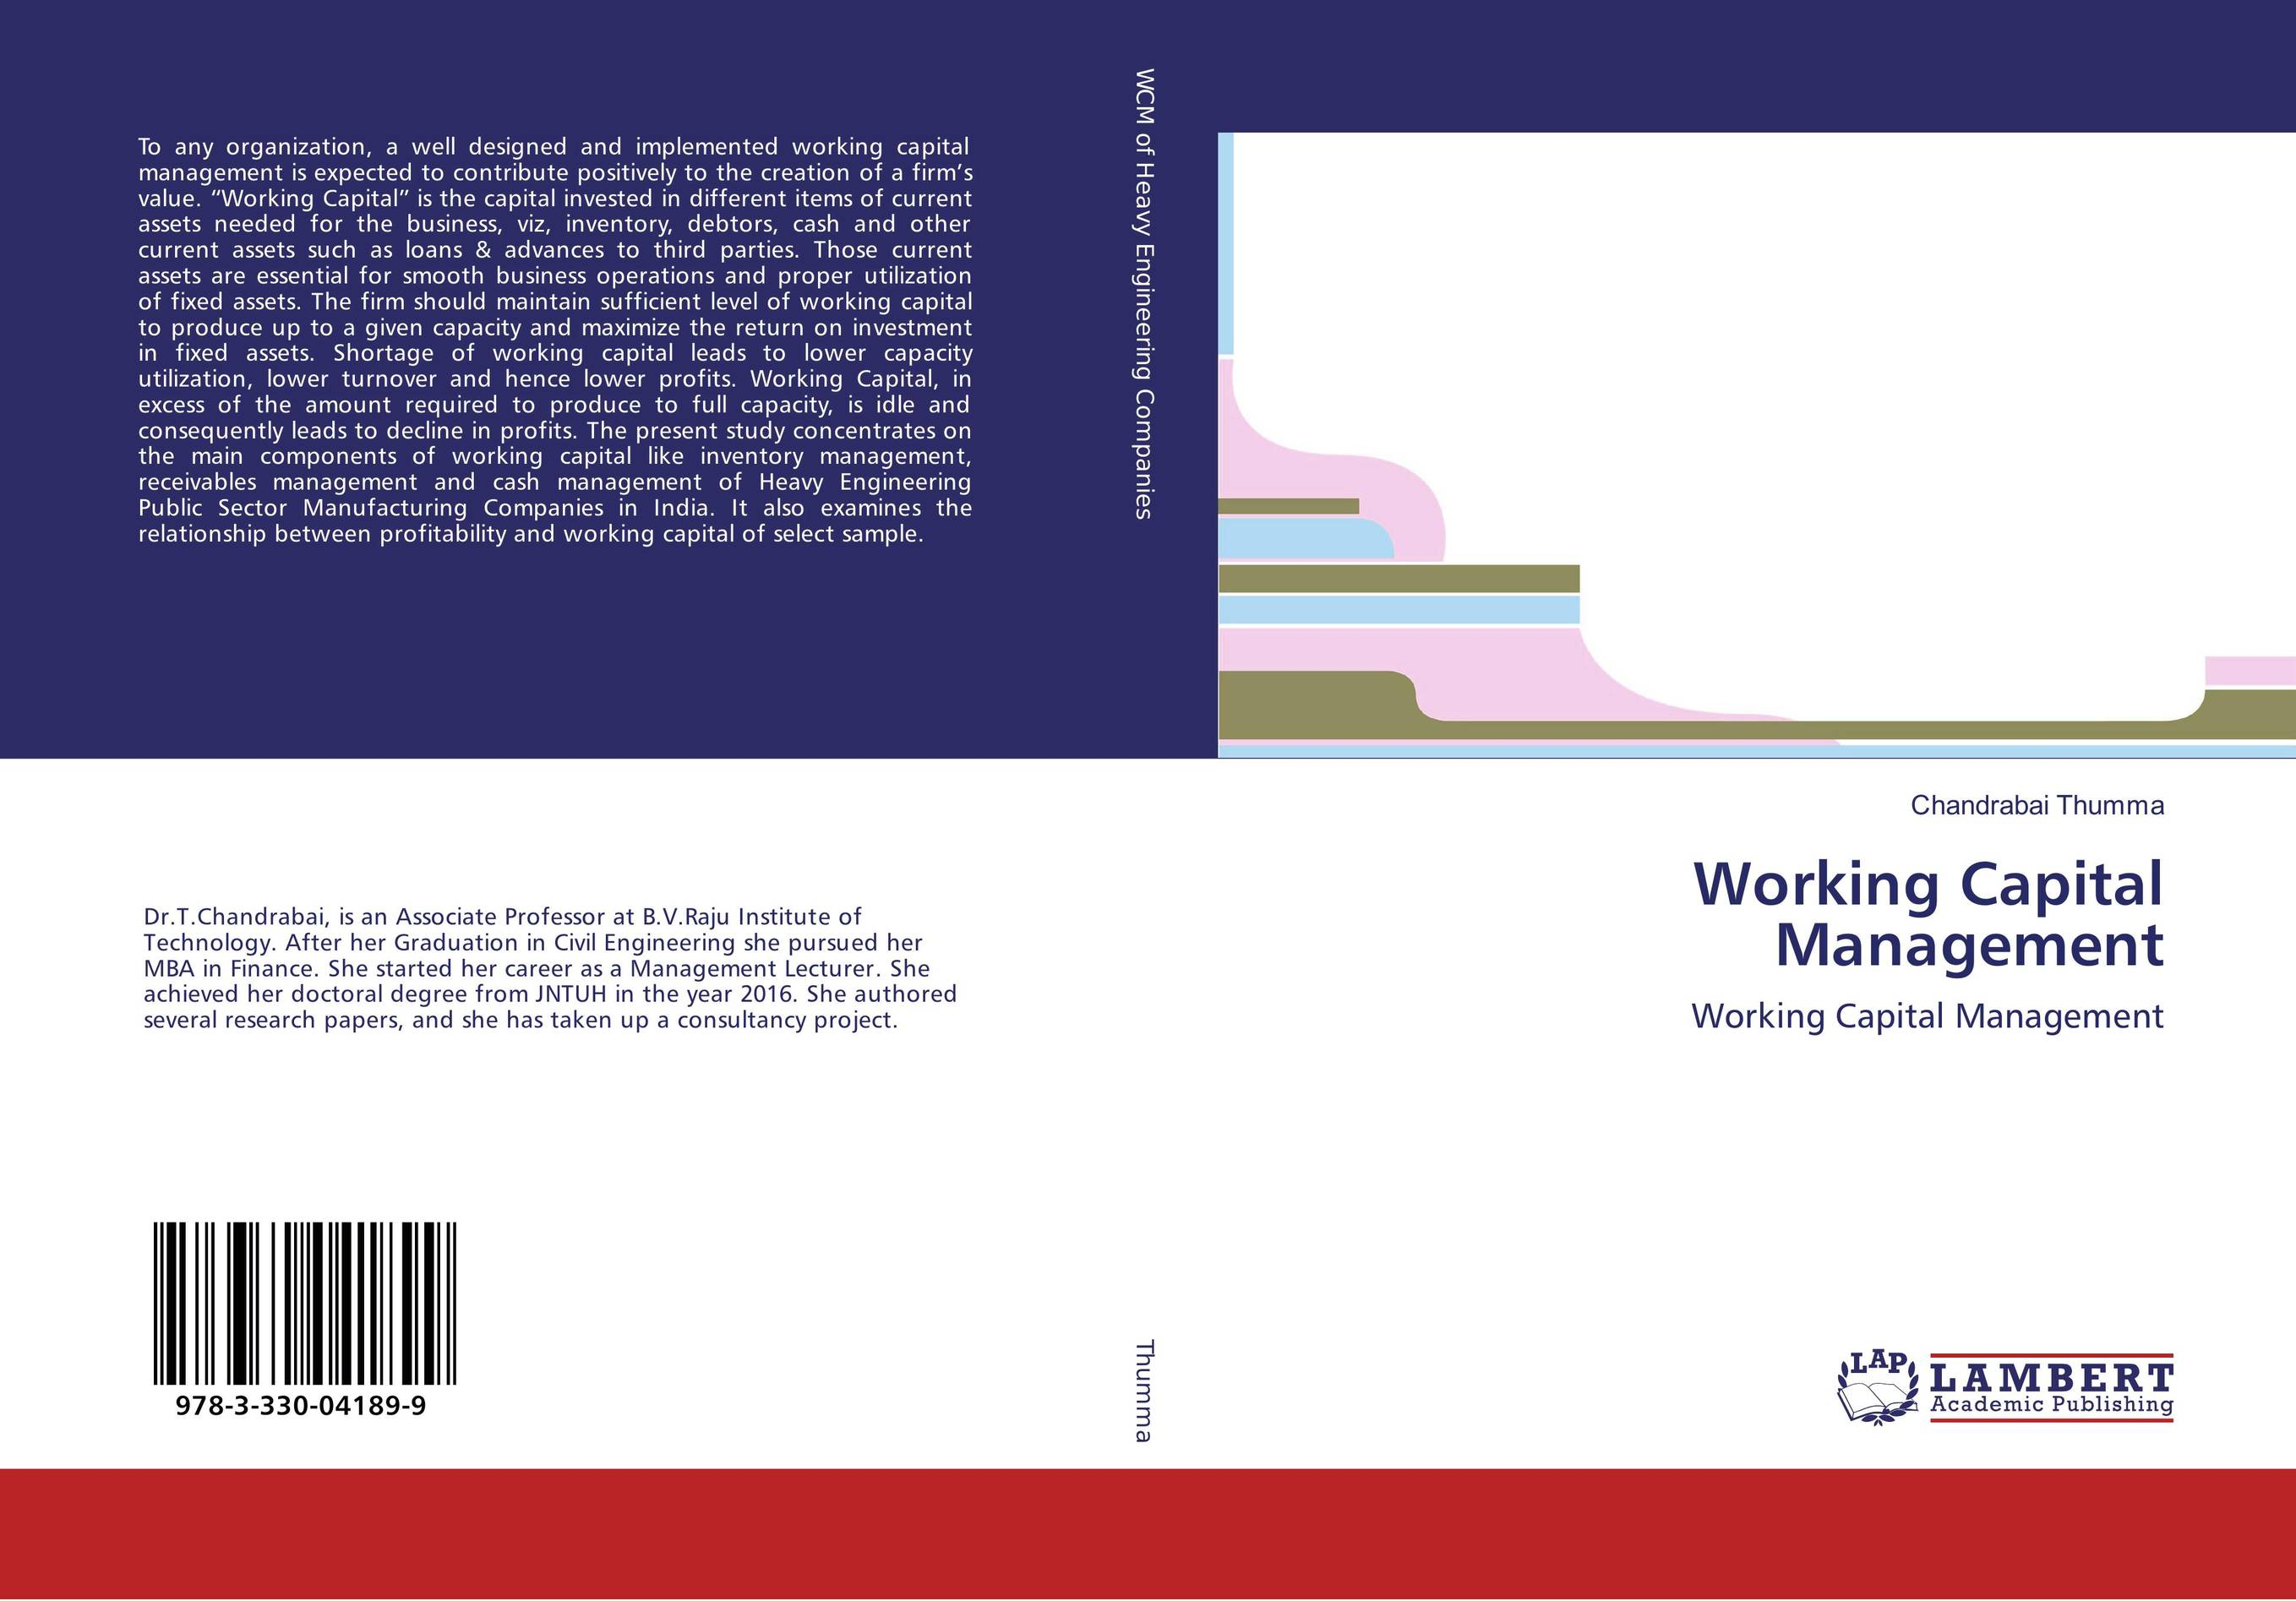 woking capital management in organisation Working capital management holds an important place in the theory of finance a large number of tools and techniques have been developed in the past to ensure optimal allocation of funds various authors have approached the study of working capital management in different ways.